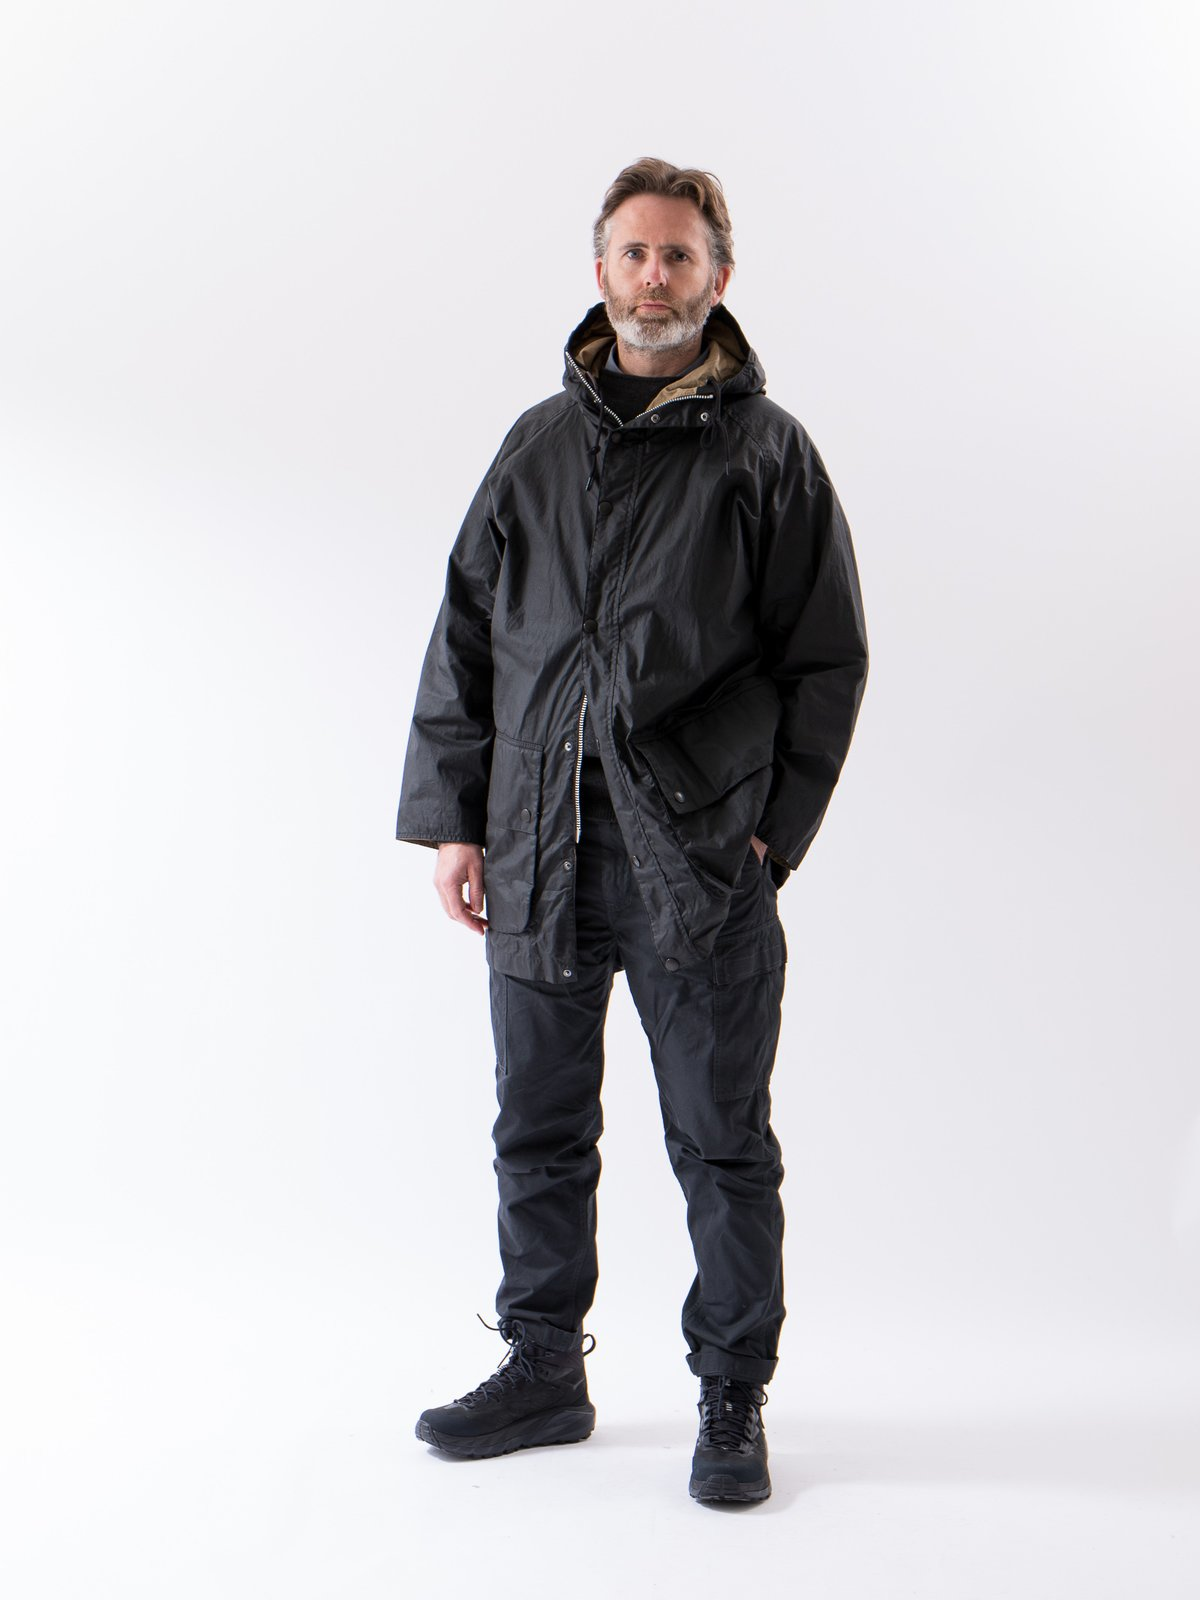 Black Hiking Waxed Cotton Jacket - Image 2